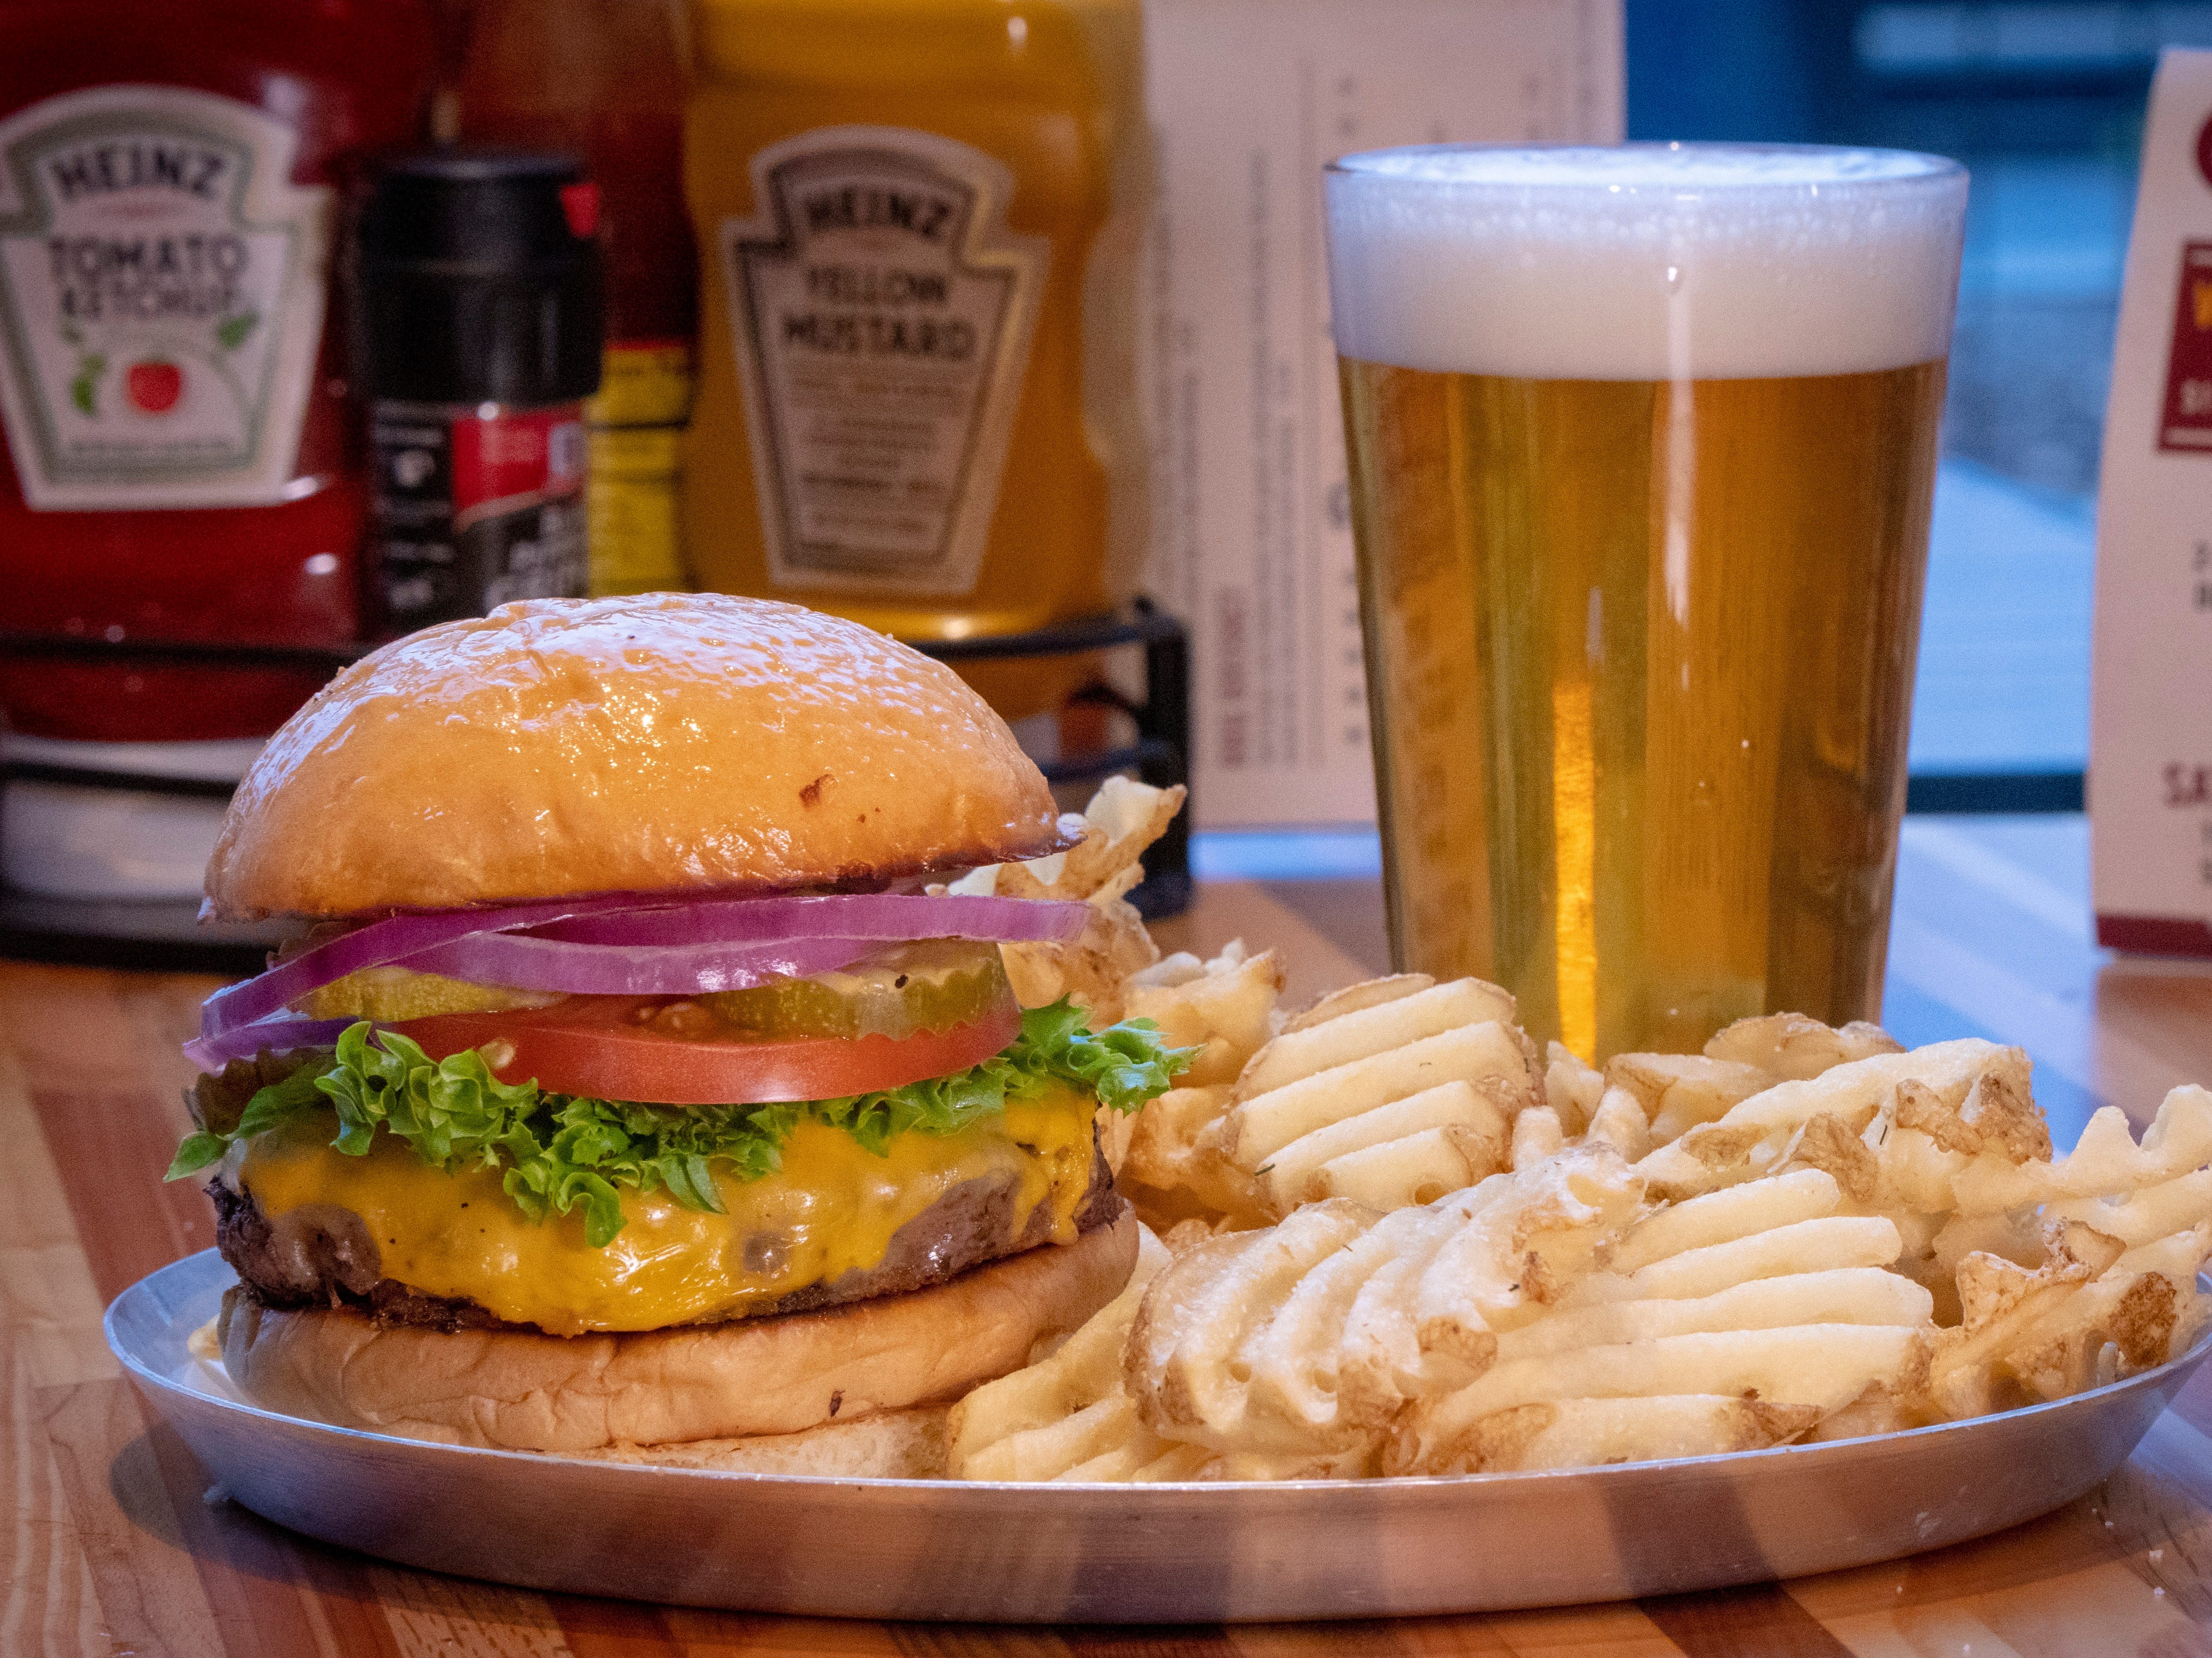 M.L.Rose cheeseburger with waffle fries and a Yazoo Pale Ale.